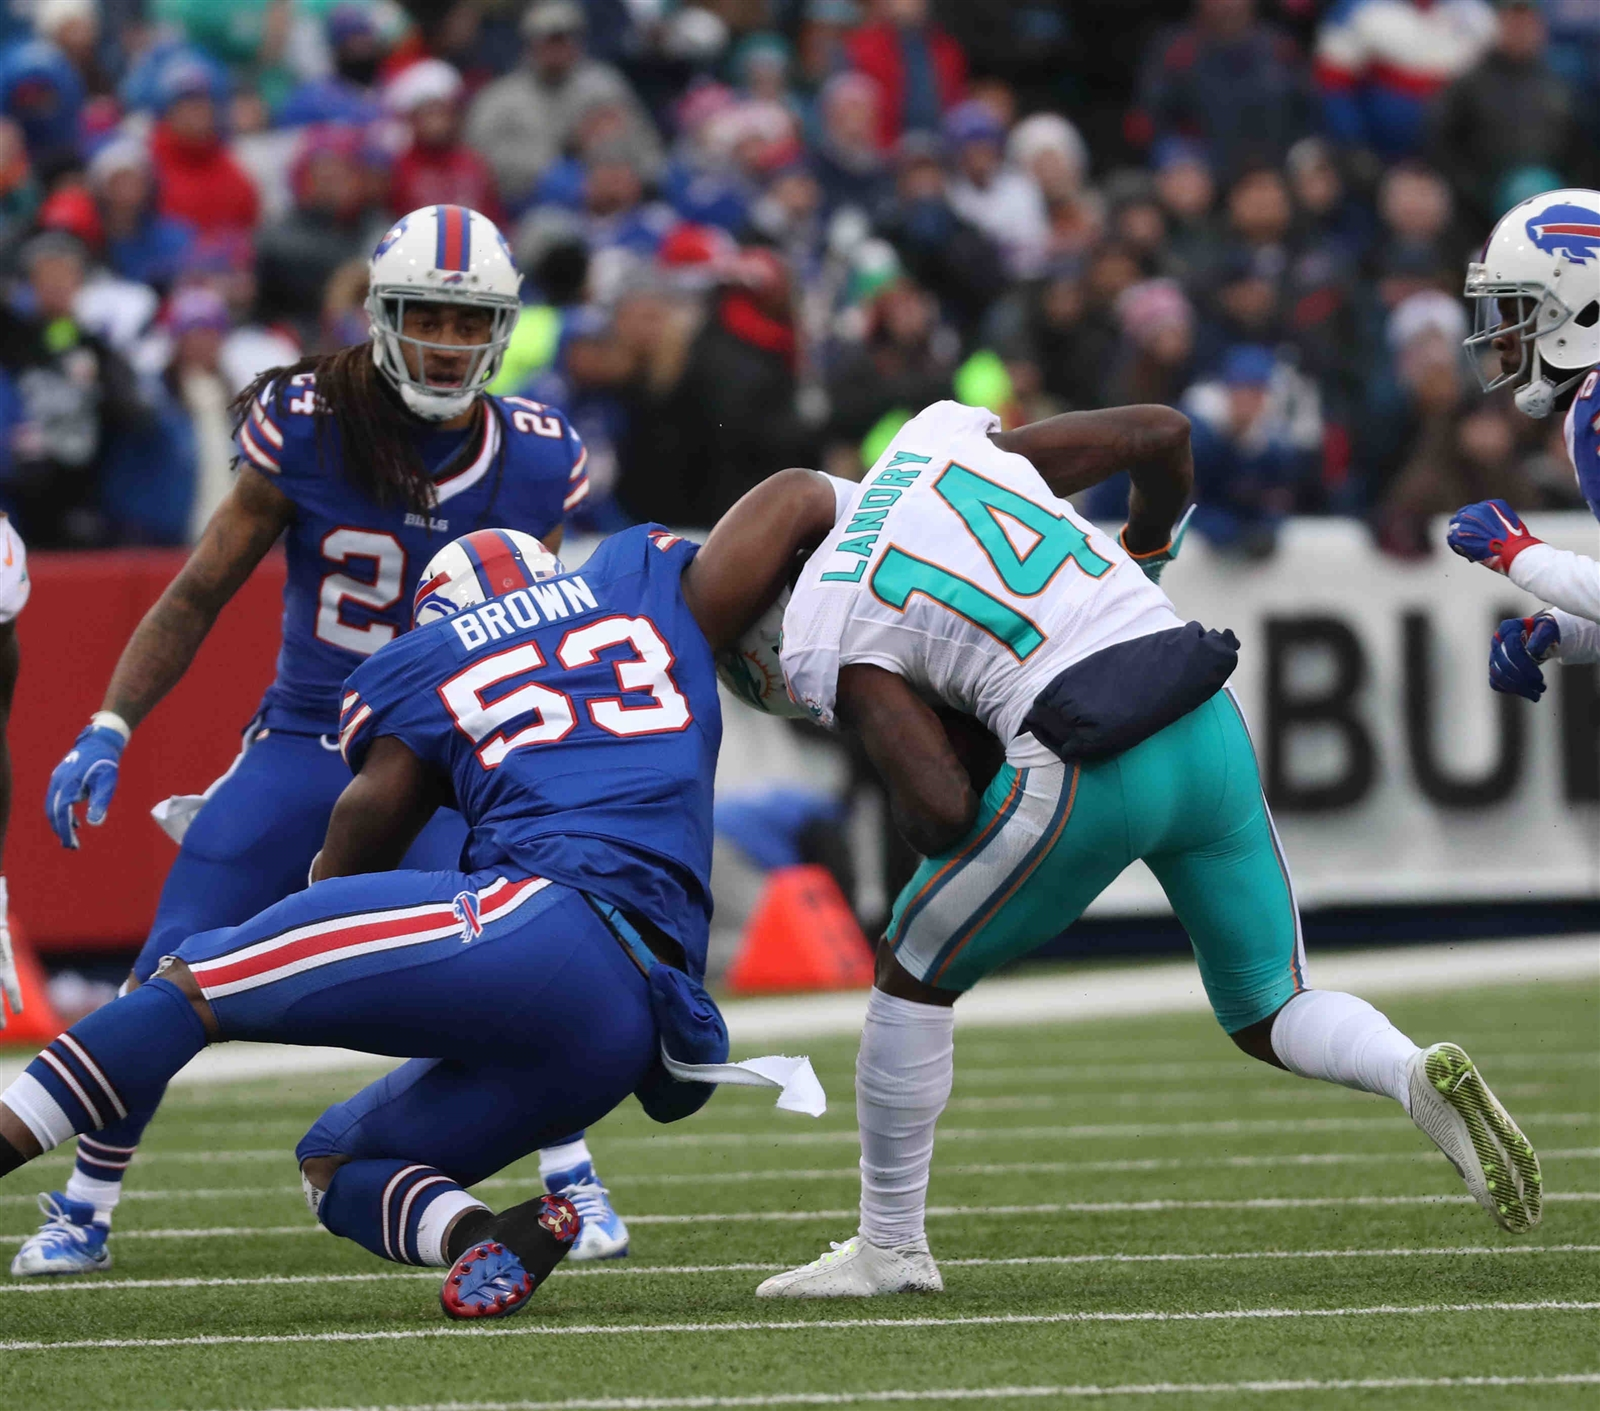 Bills inside linebacker Zach Brown tackles Dolphins wide receiver Jarvis Landry in the first quarter.